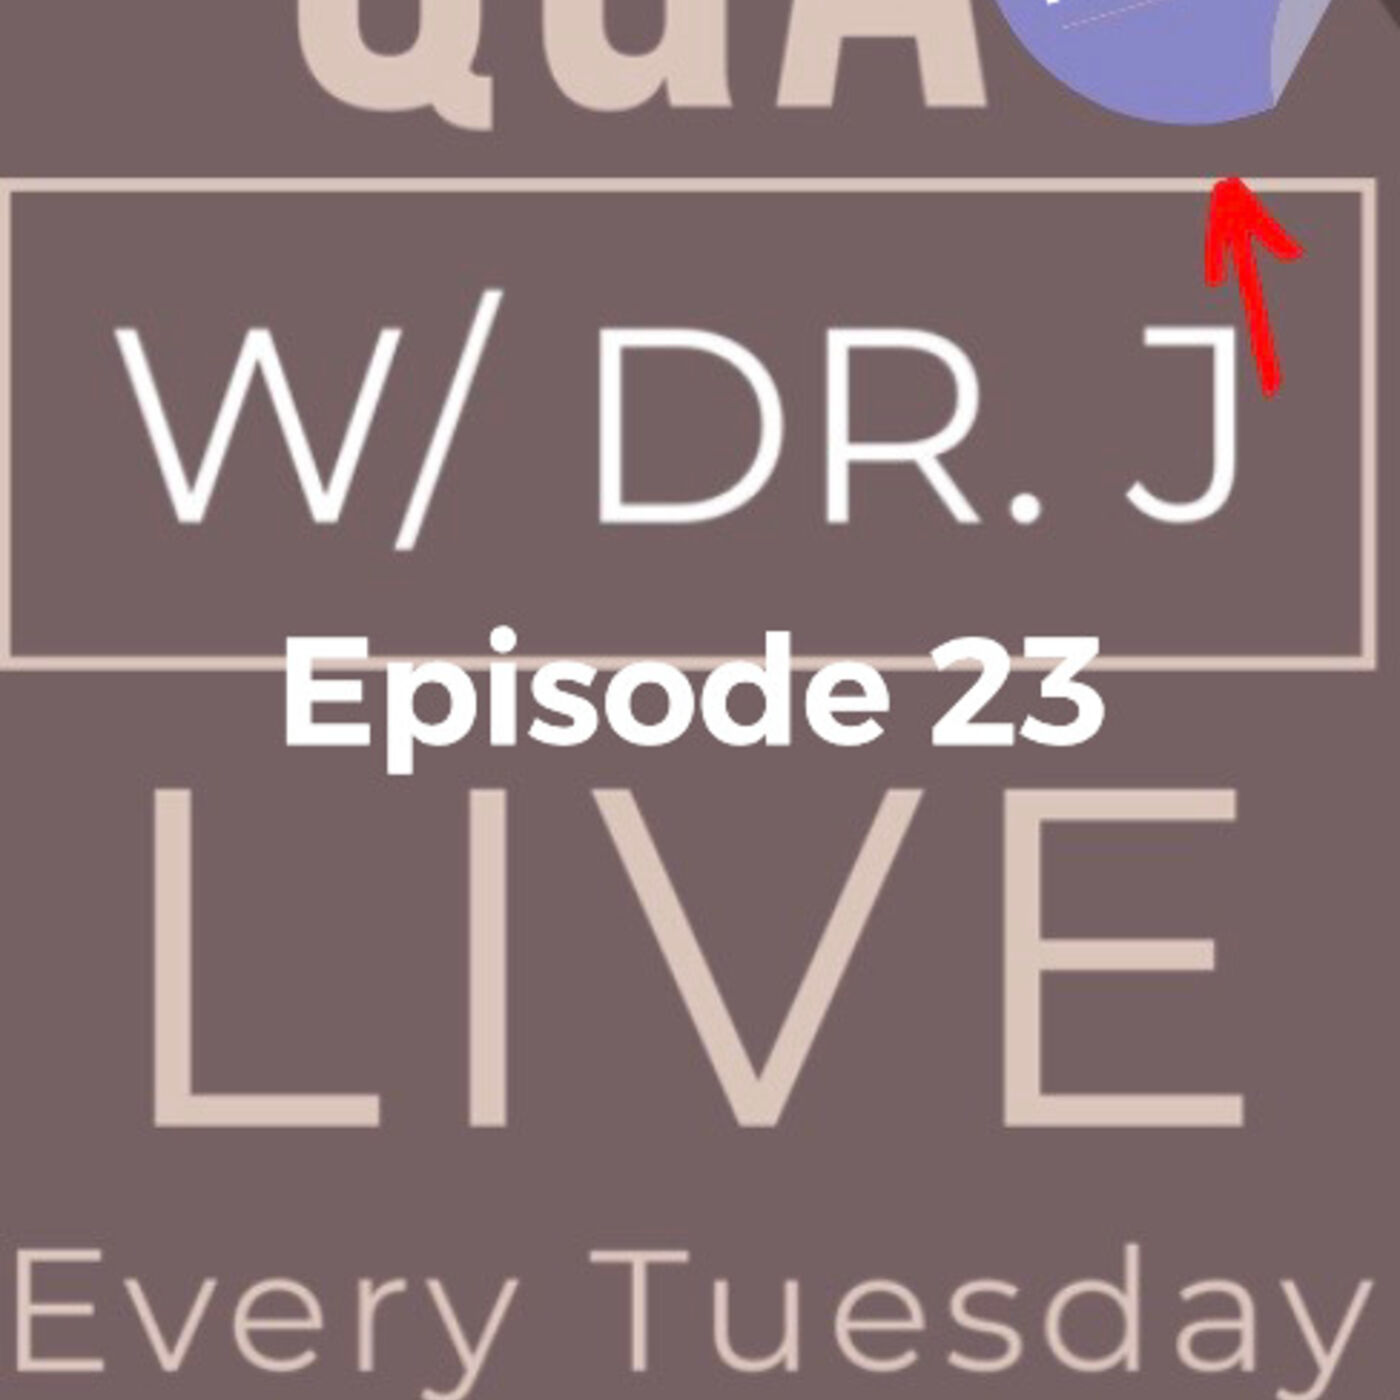 EP 23 Q&A w/ Dr J - Facelift before and after with Dr Jeneby